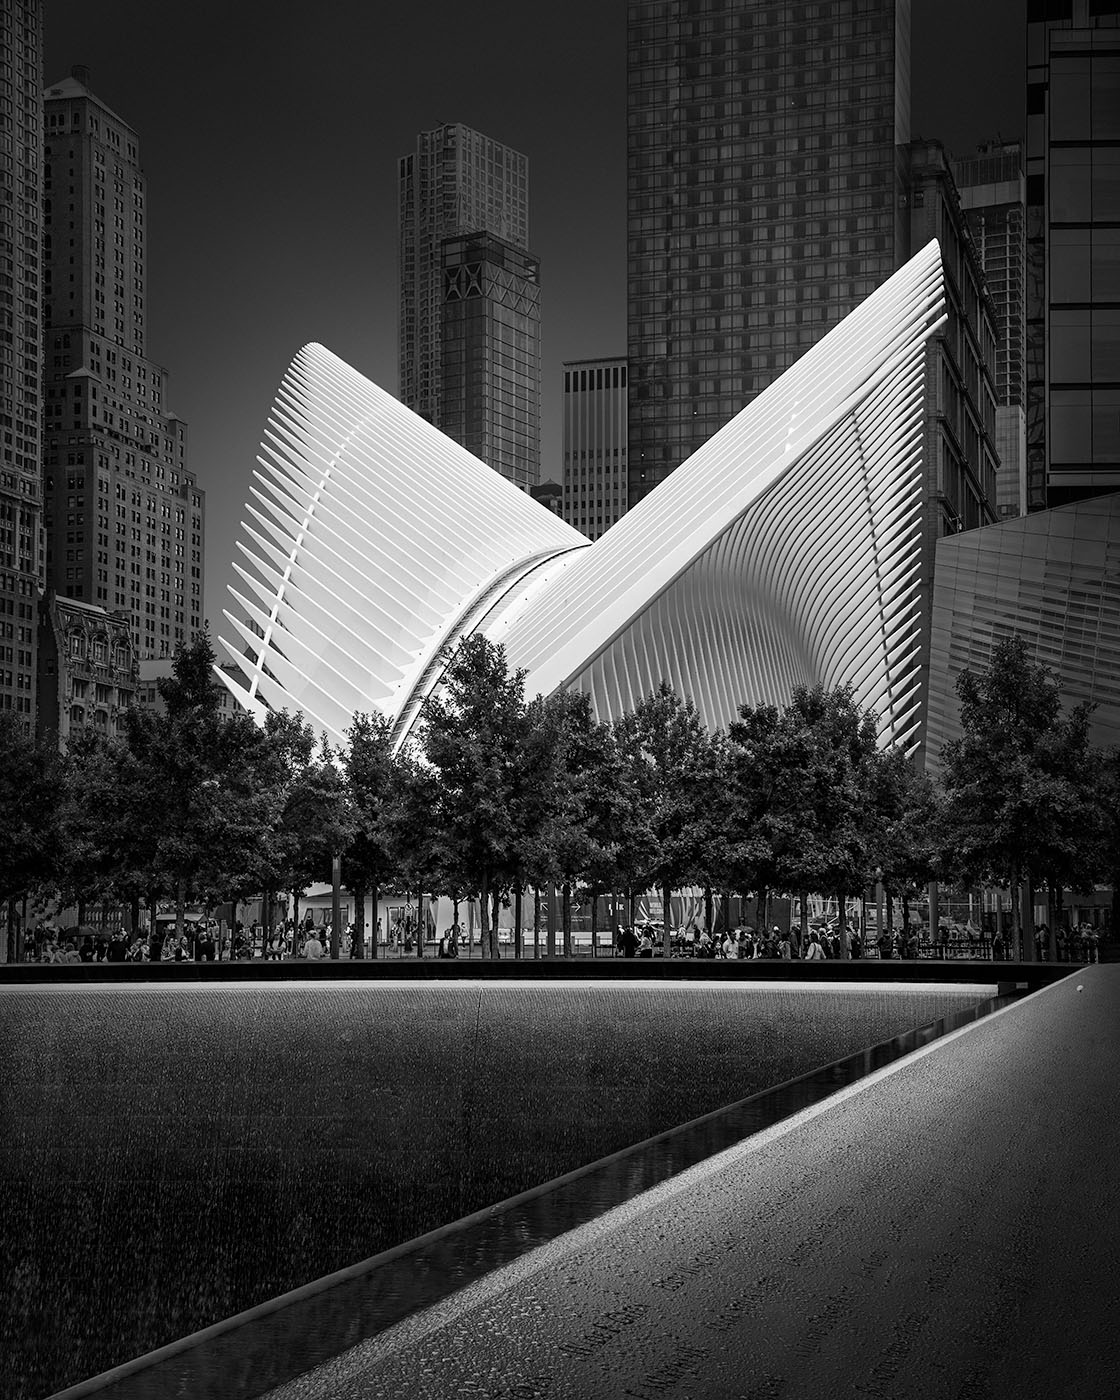 Flying Away II - Oculus, New York © Julia Anna Gospodarou 2020 - shortcuts versus real craftsmanship in art and photography